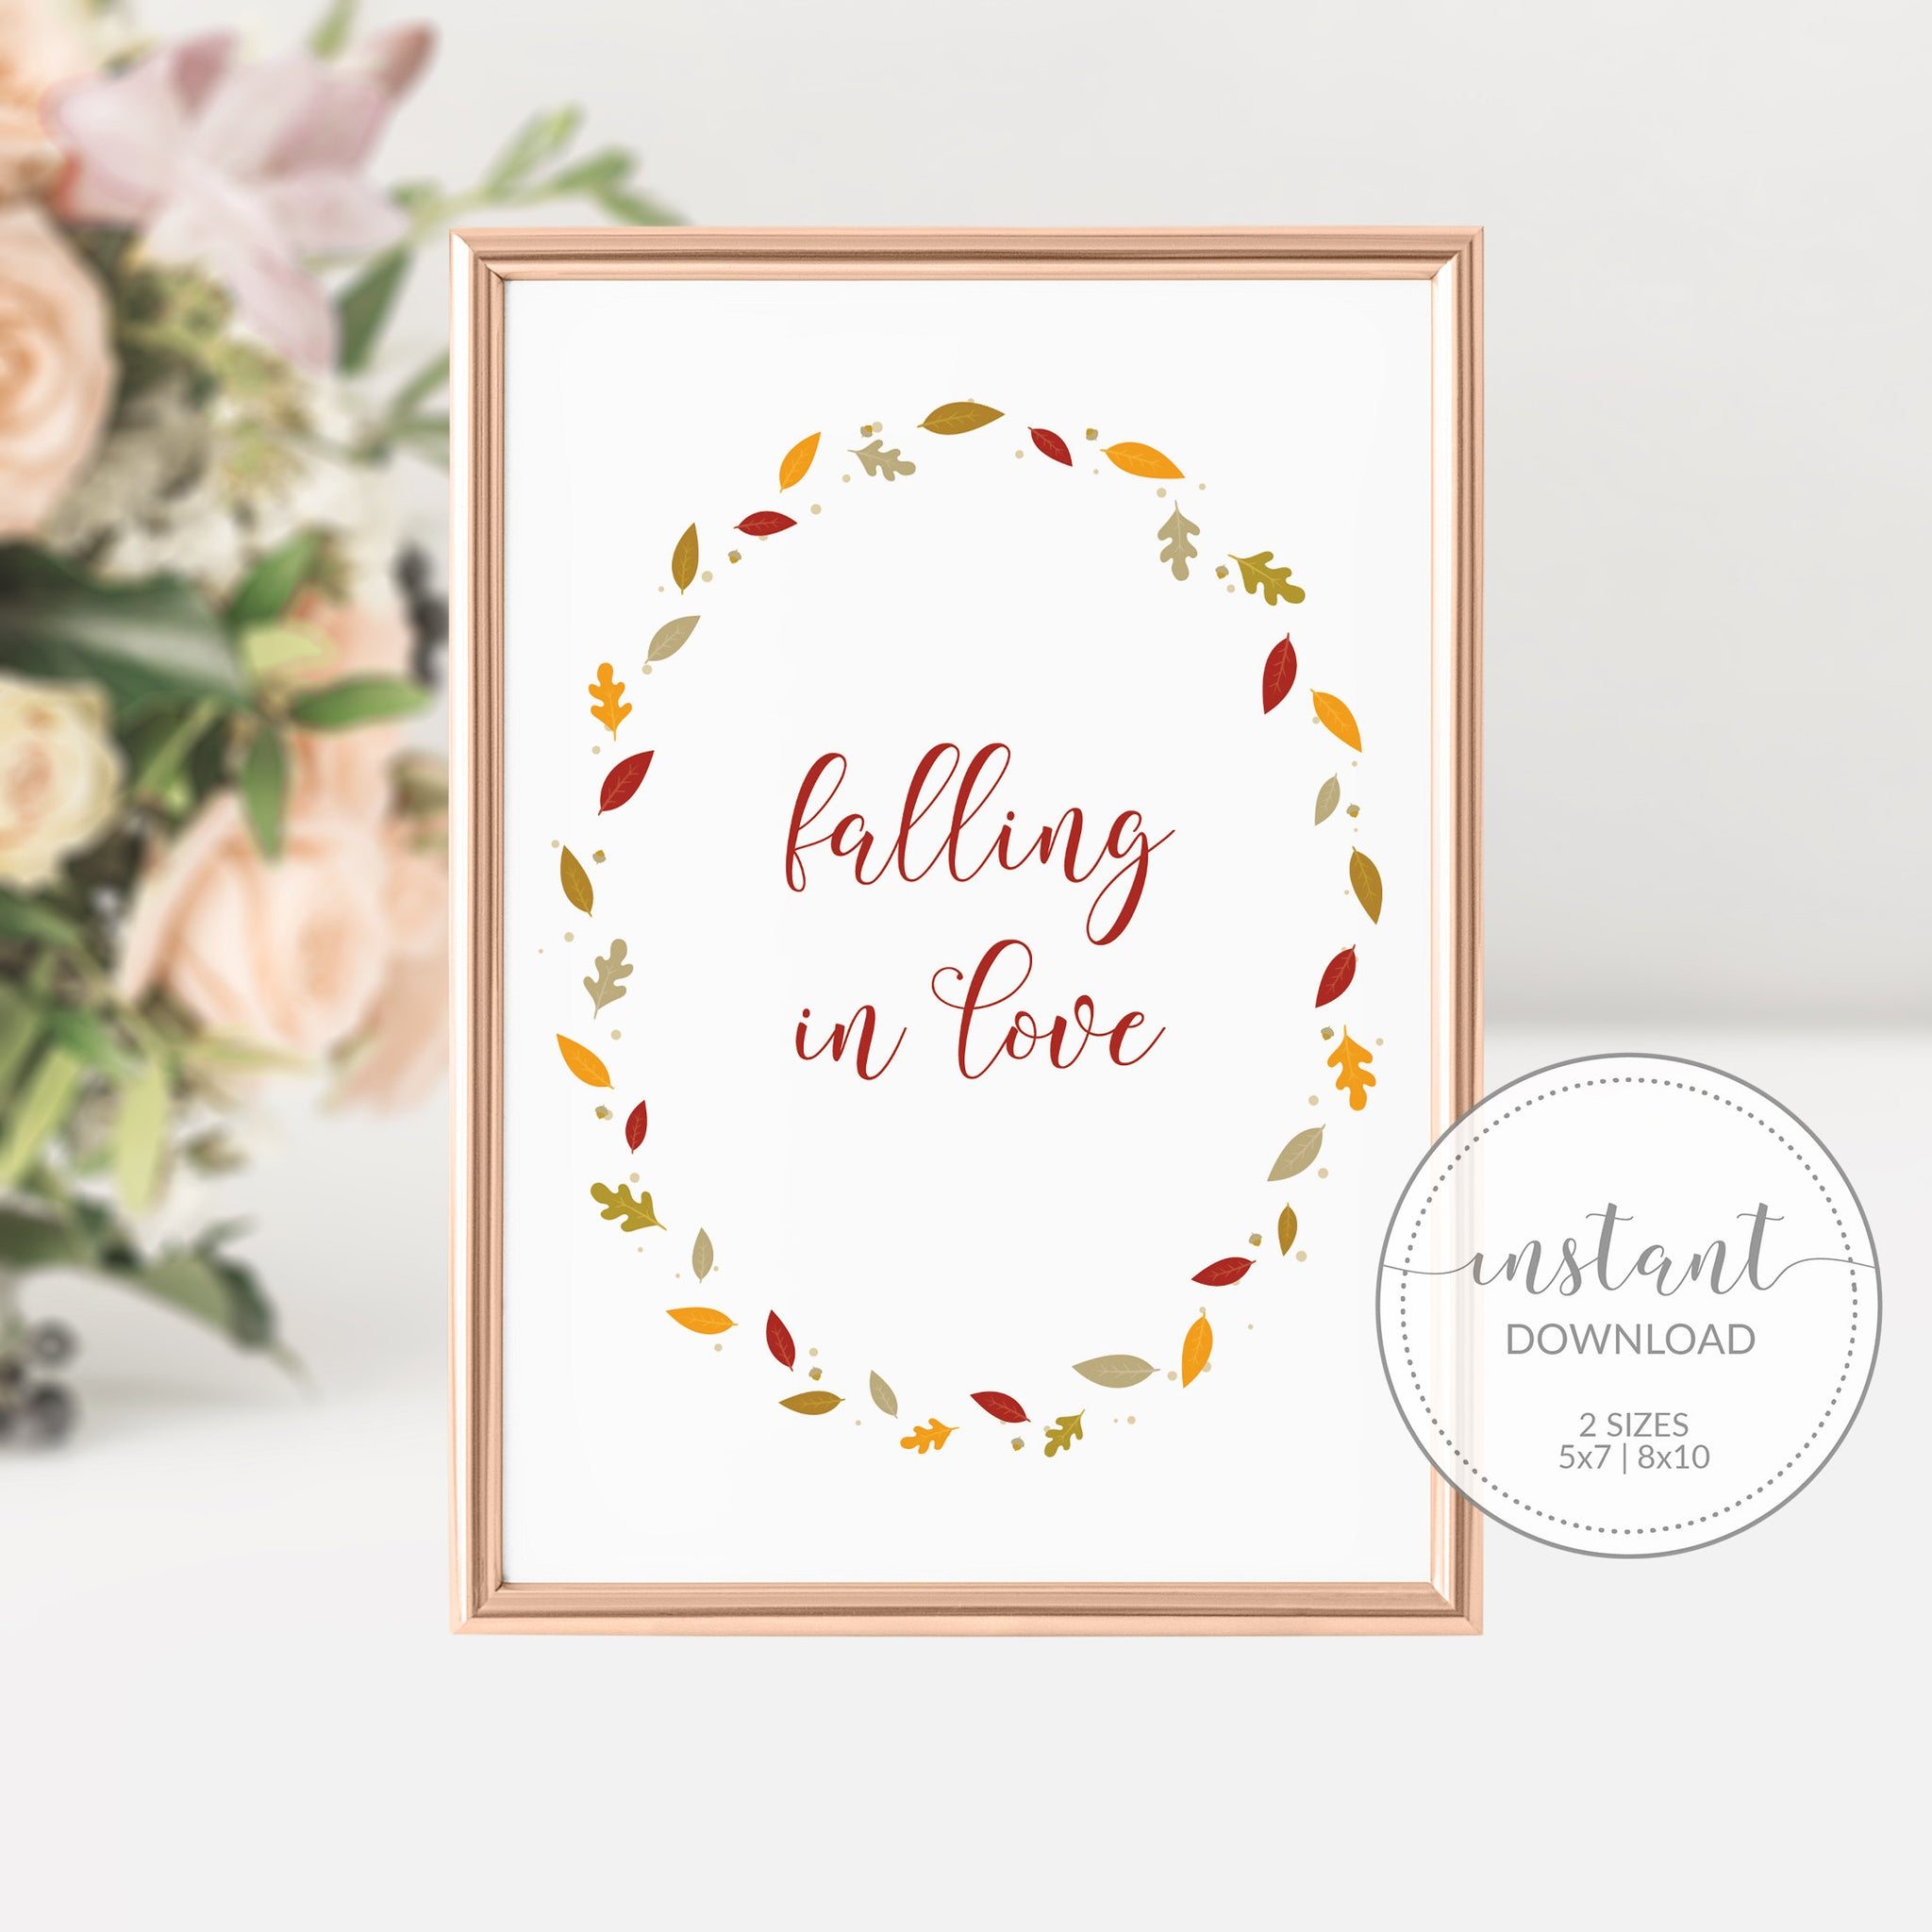 Falling in Love Sign, Wedding Fall Decor, Falling In Love Bridal Shower Sign, Fall in Love Sign, INSTANT DOWNLOAD - FL100 - @PlumPolkaDot